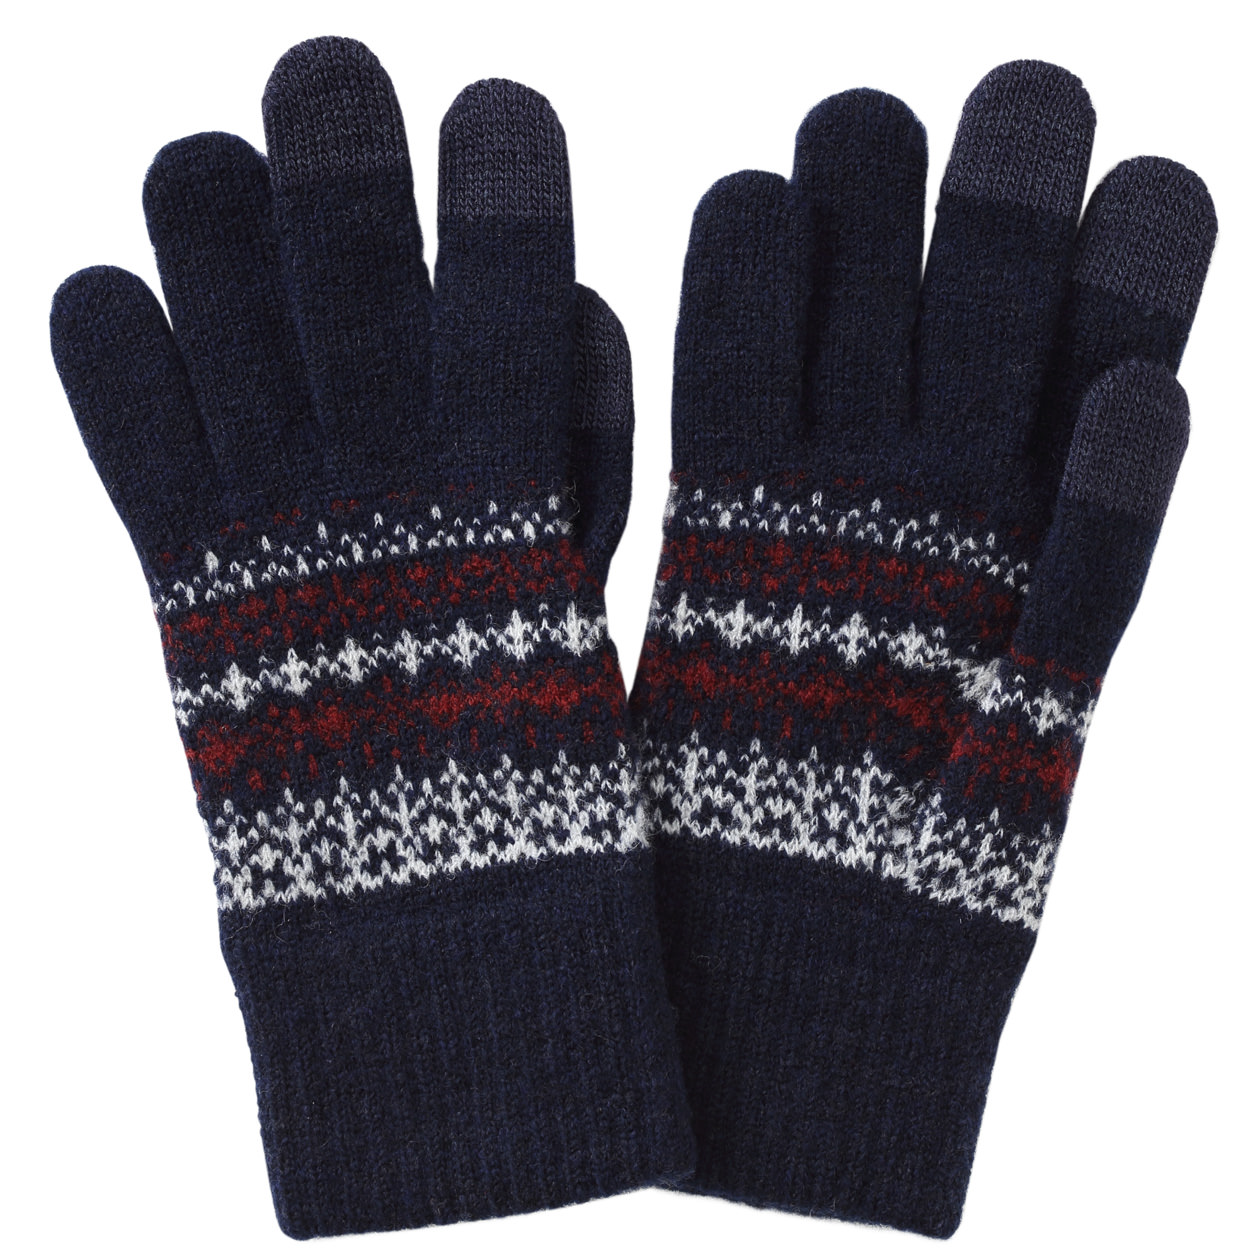 Wool Mixed Inside Brush Touch Panel Gloves U.P. $23 (Less 10%)